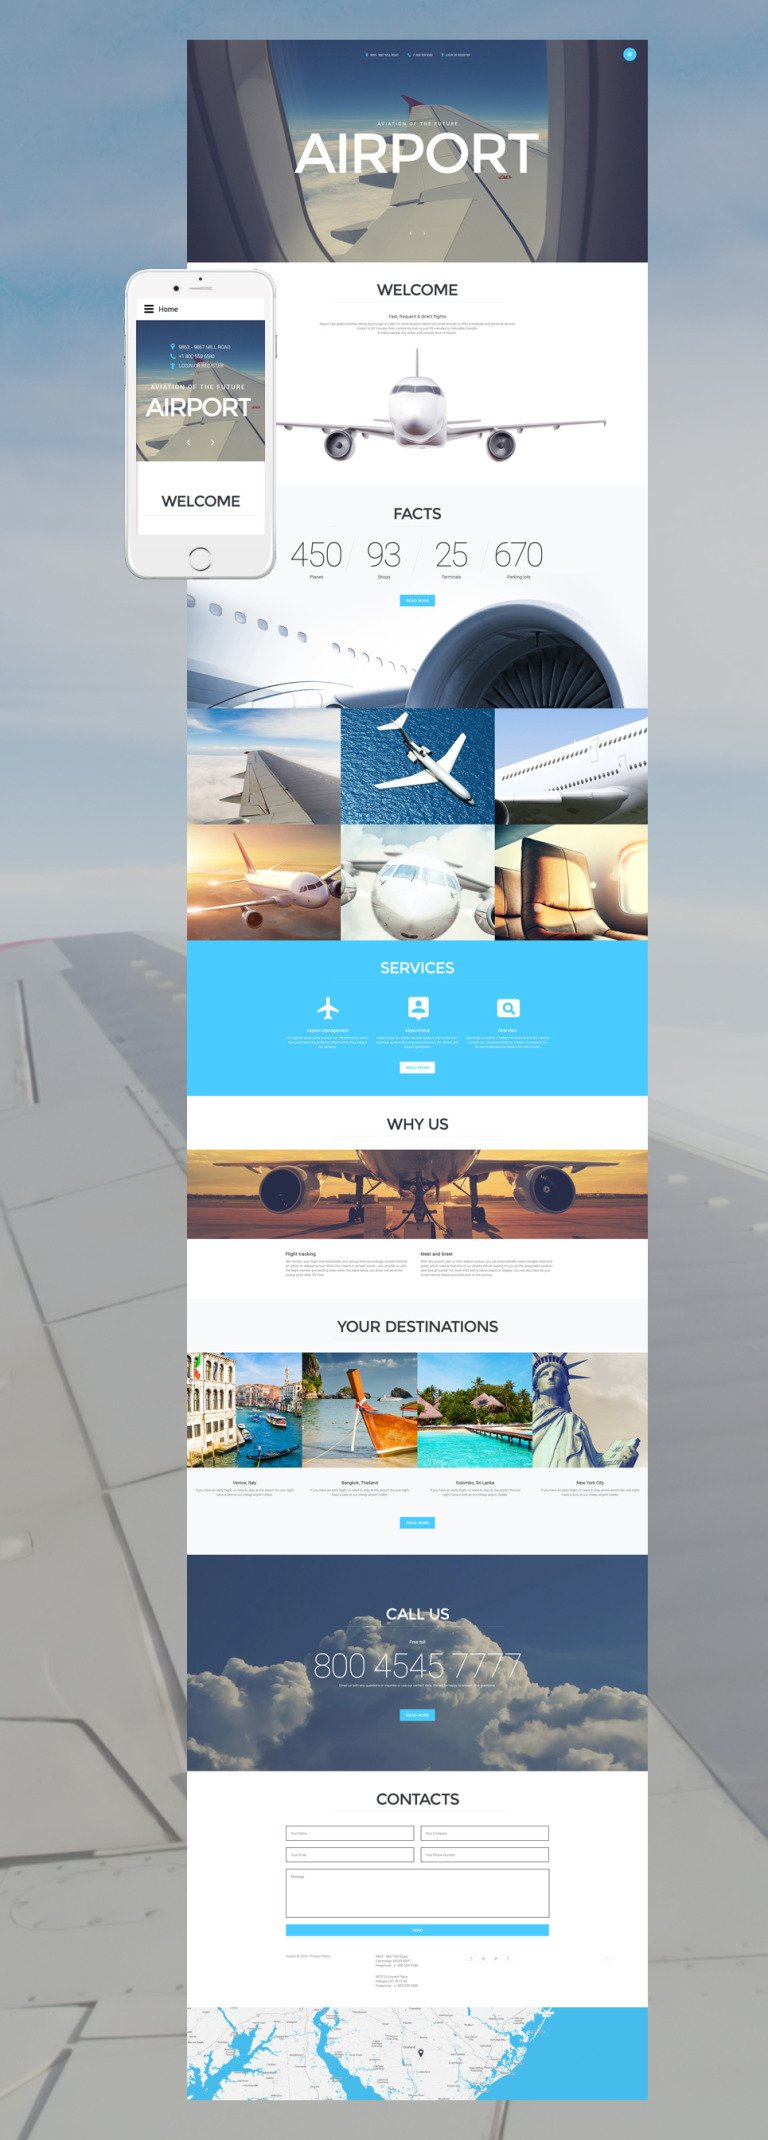 Airport Joomla Template New Screenshots BIG